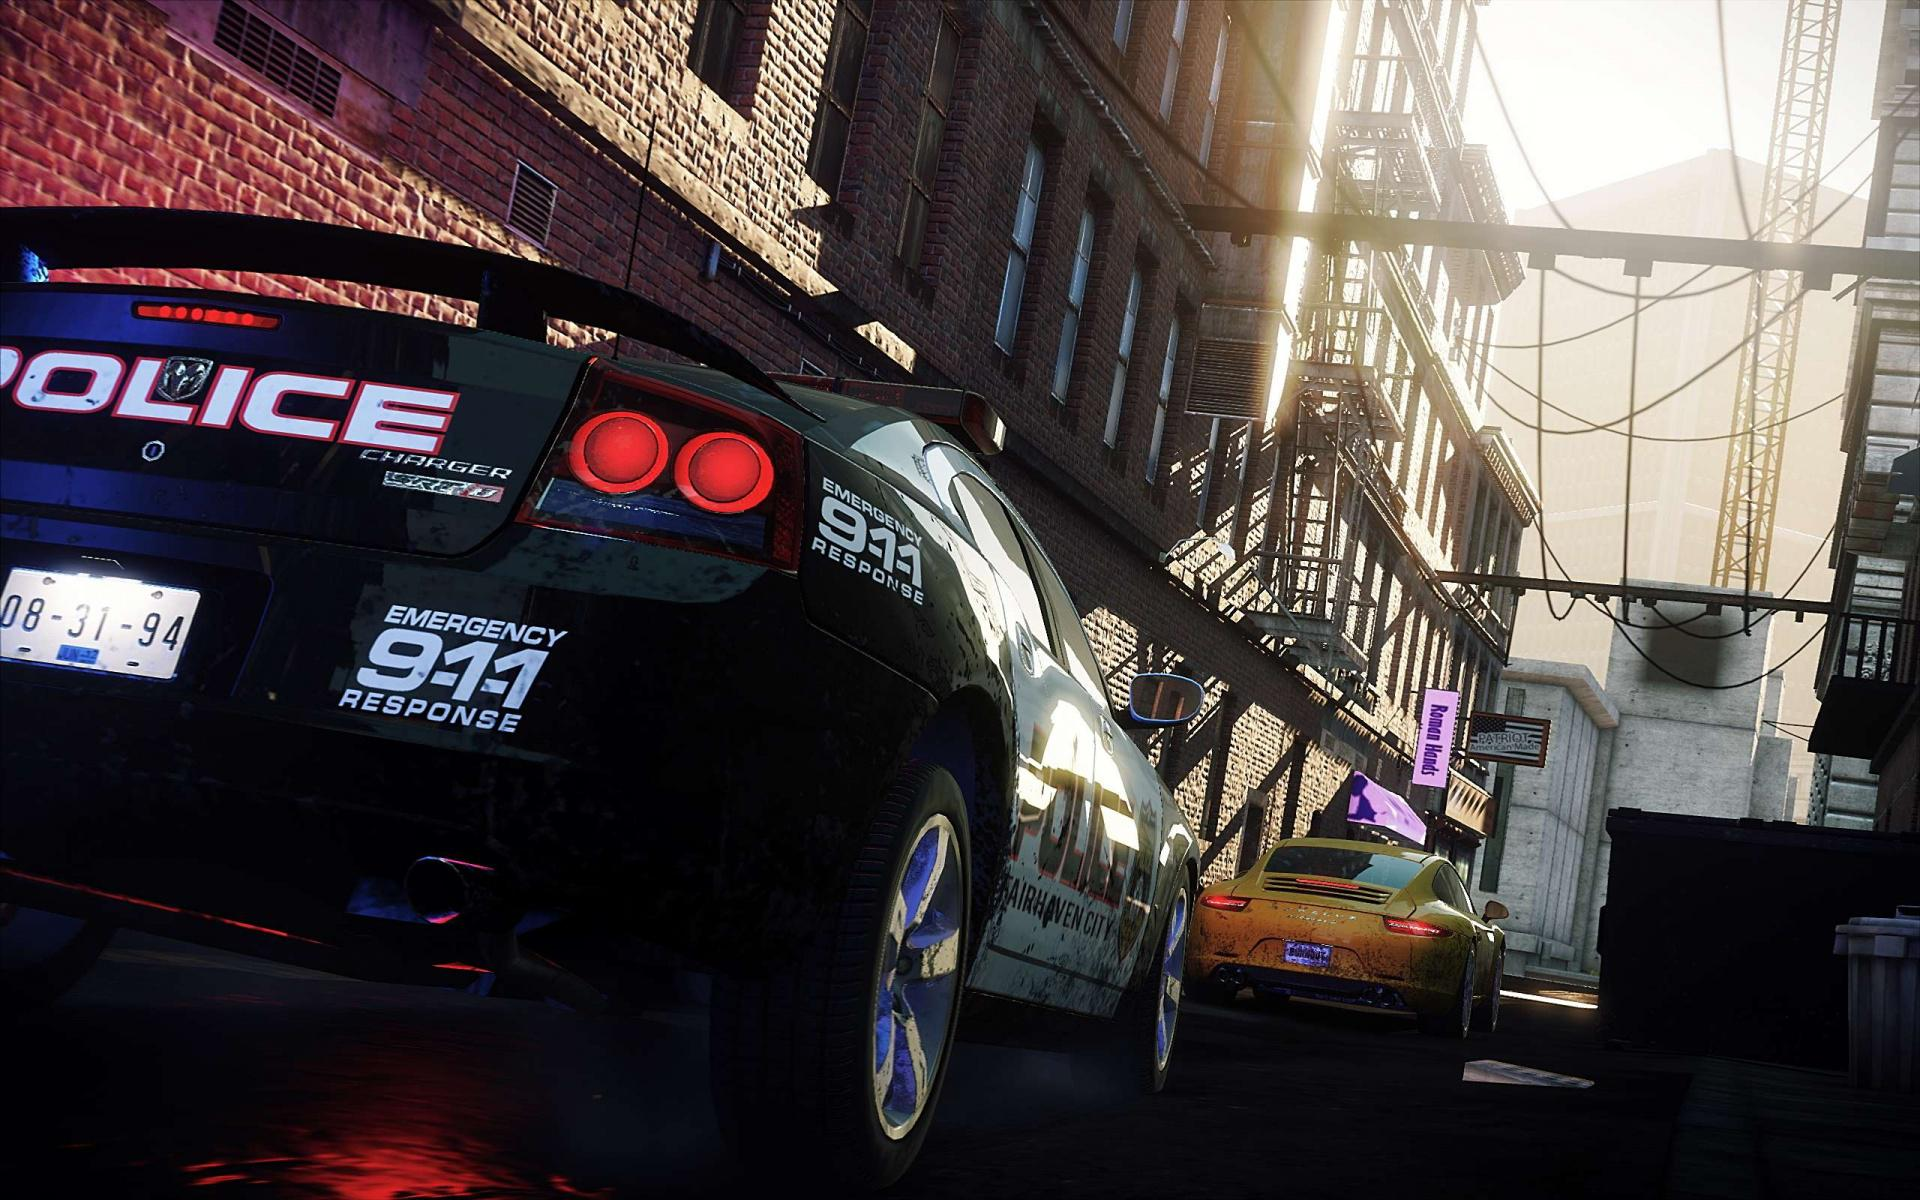 Need for Speed Most Wanted, en Wii U a partir del 19 de marzo